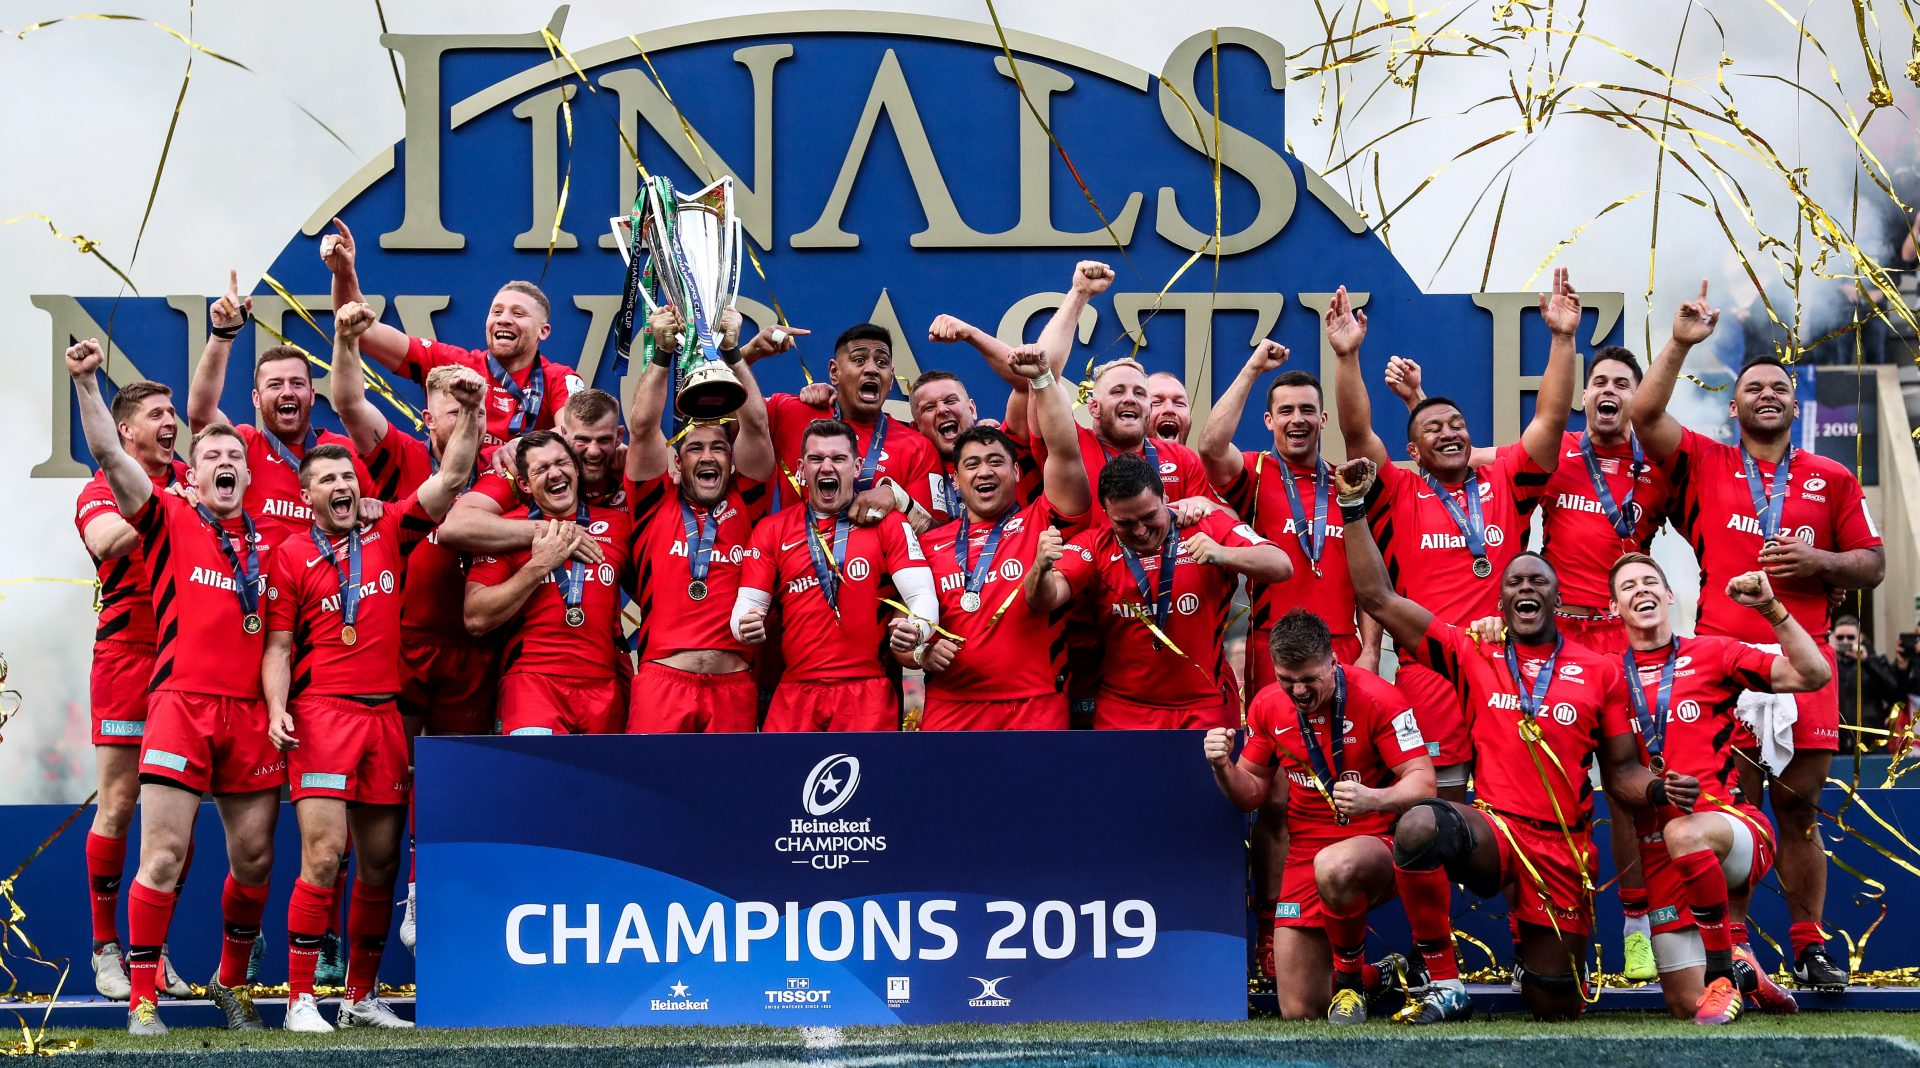 Champions Cup | Champions